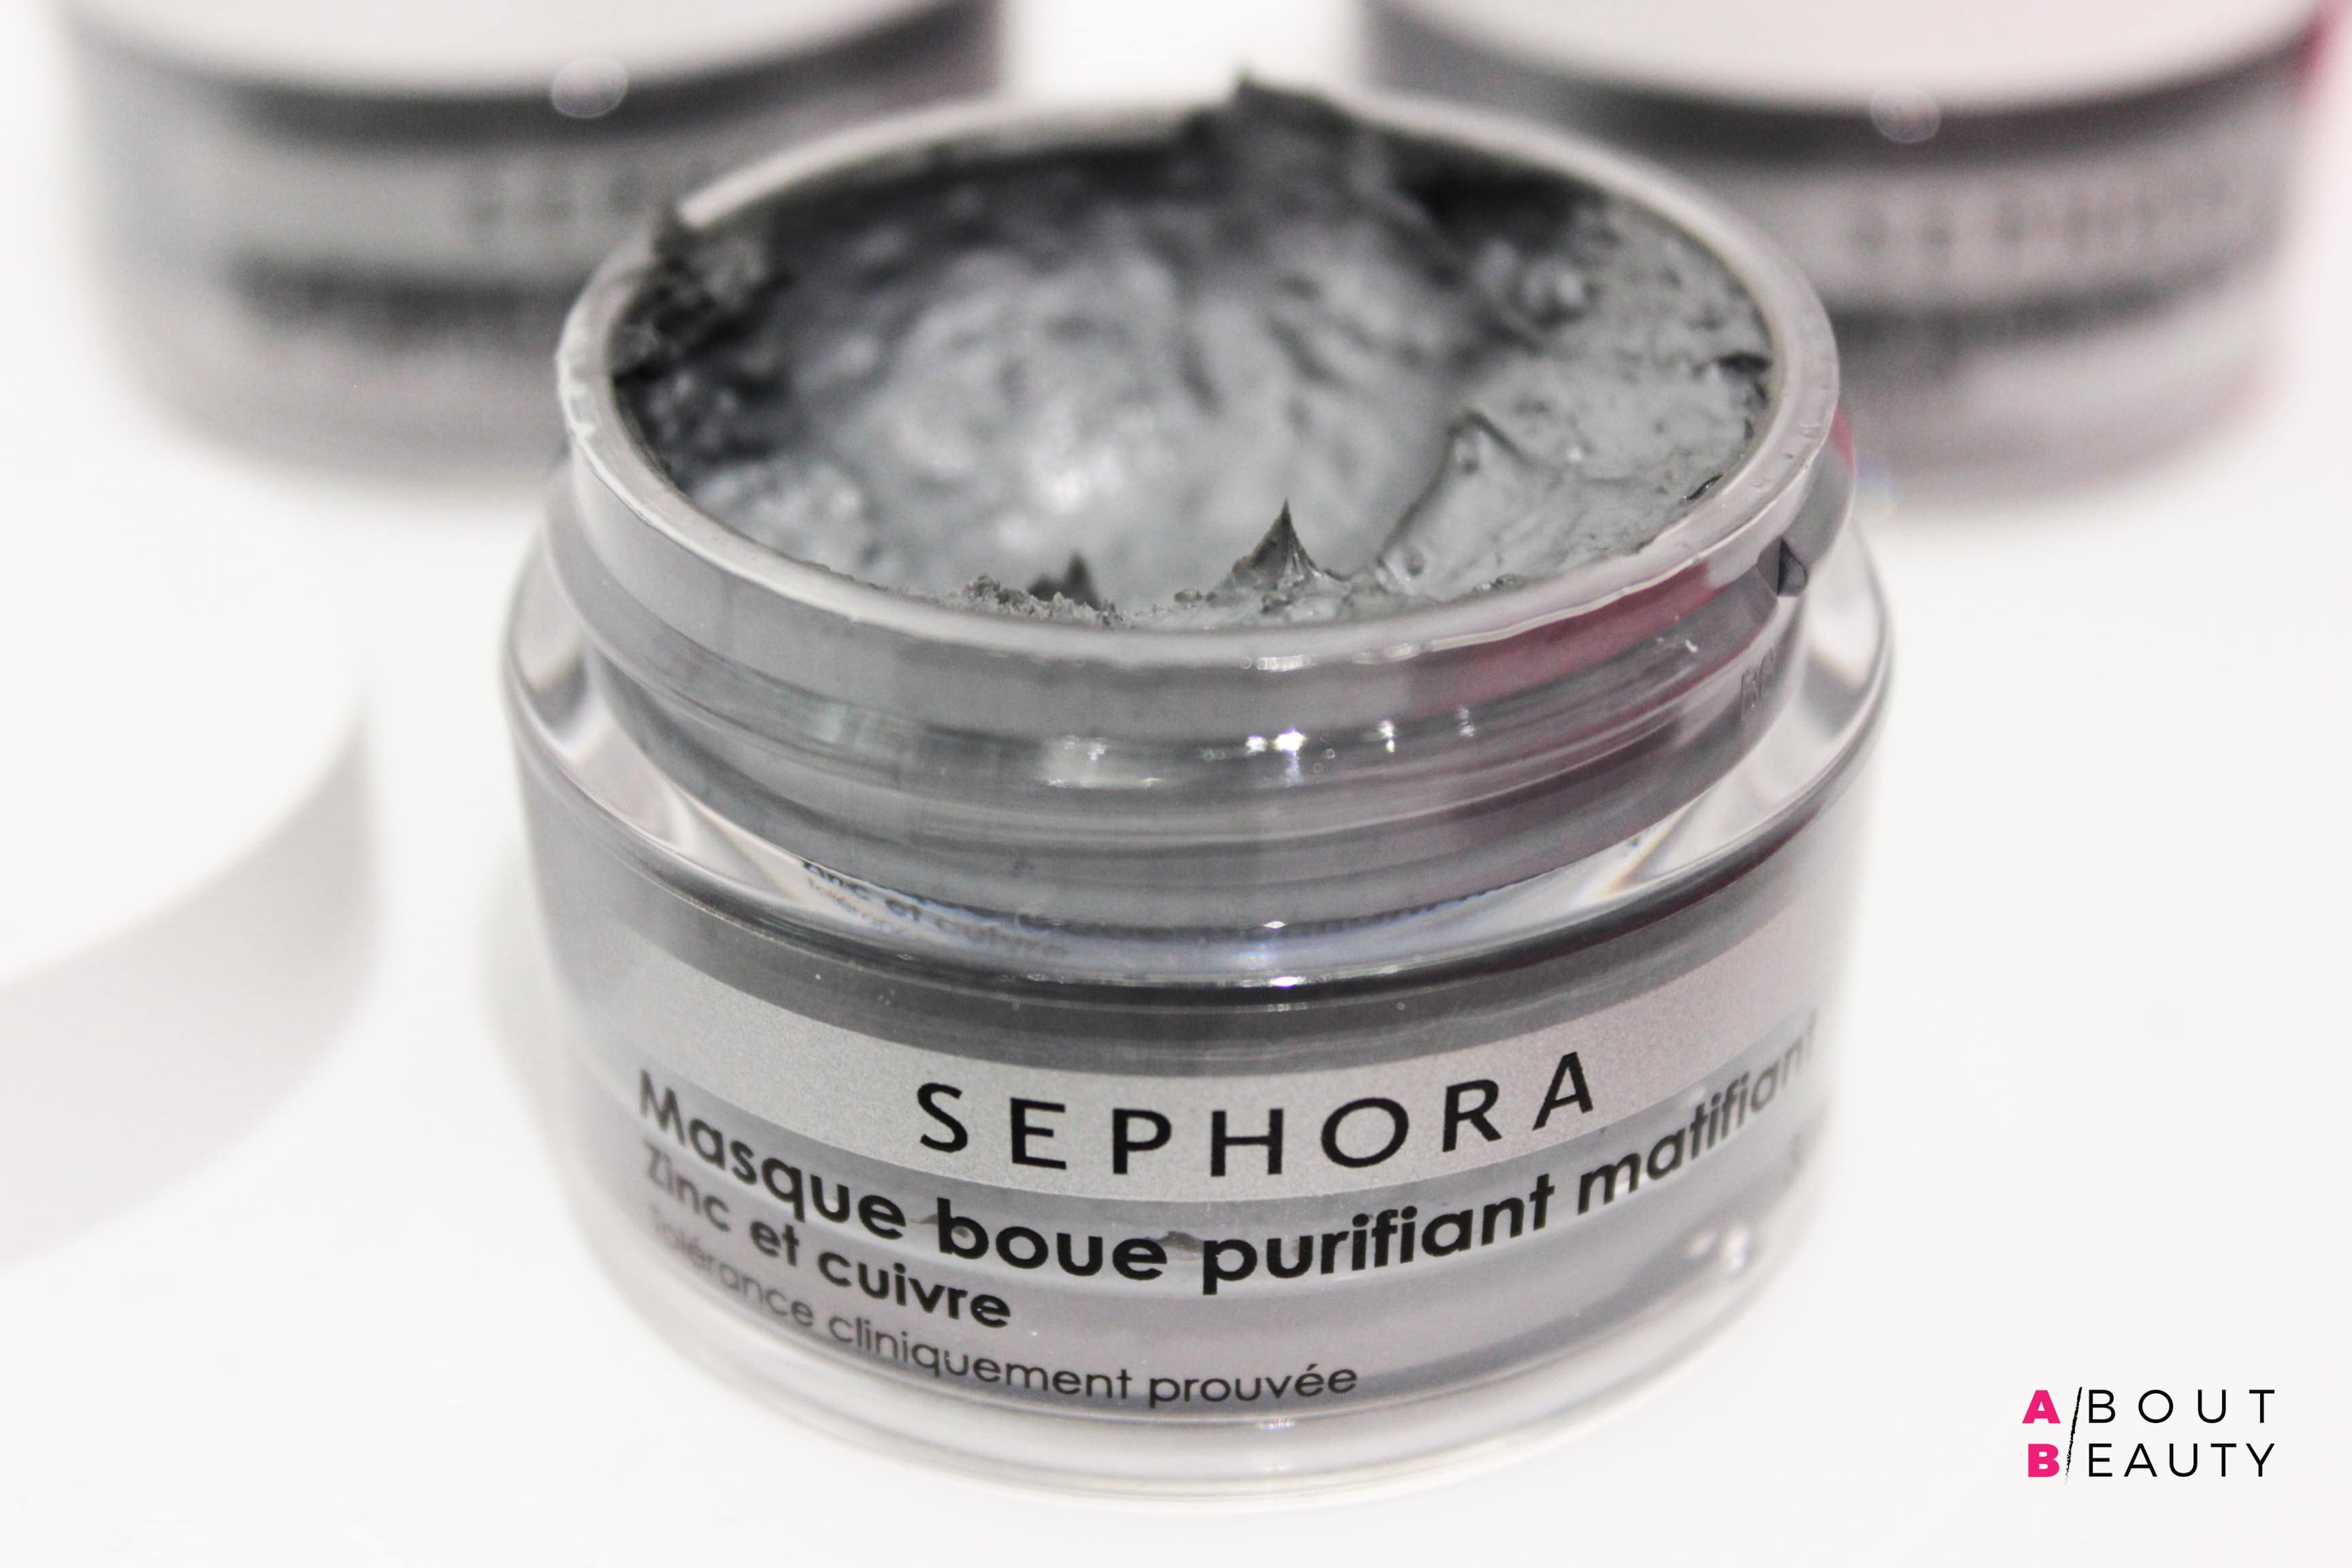 Skin Care Sephora: Mud Mask, maschera purificante